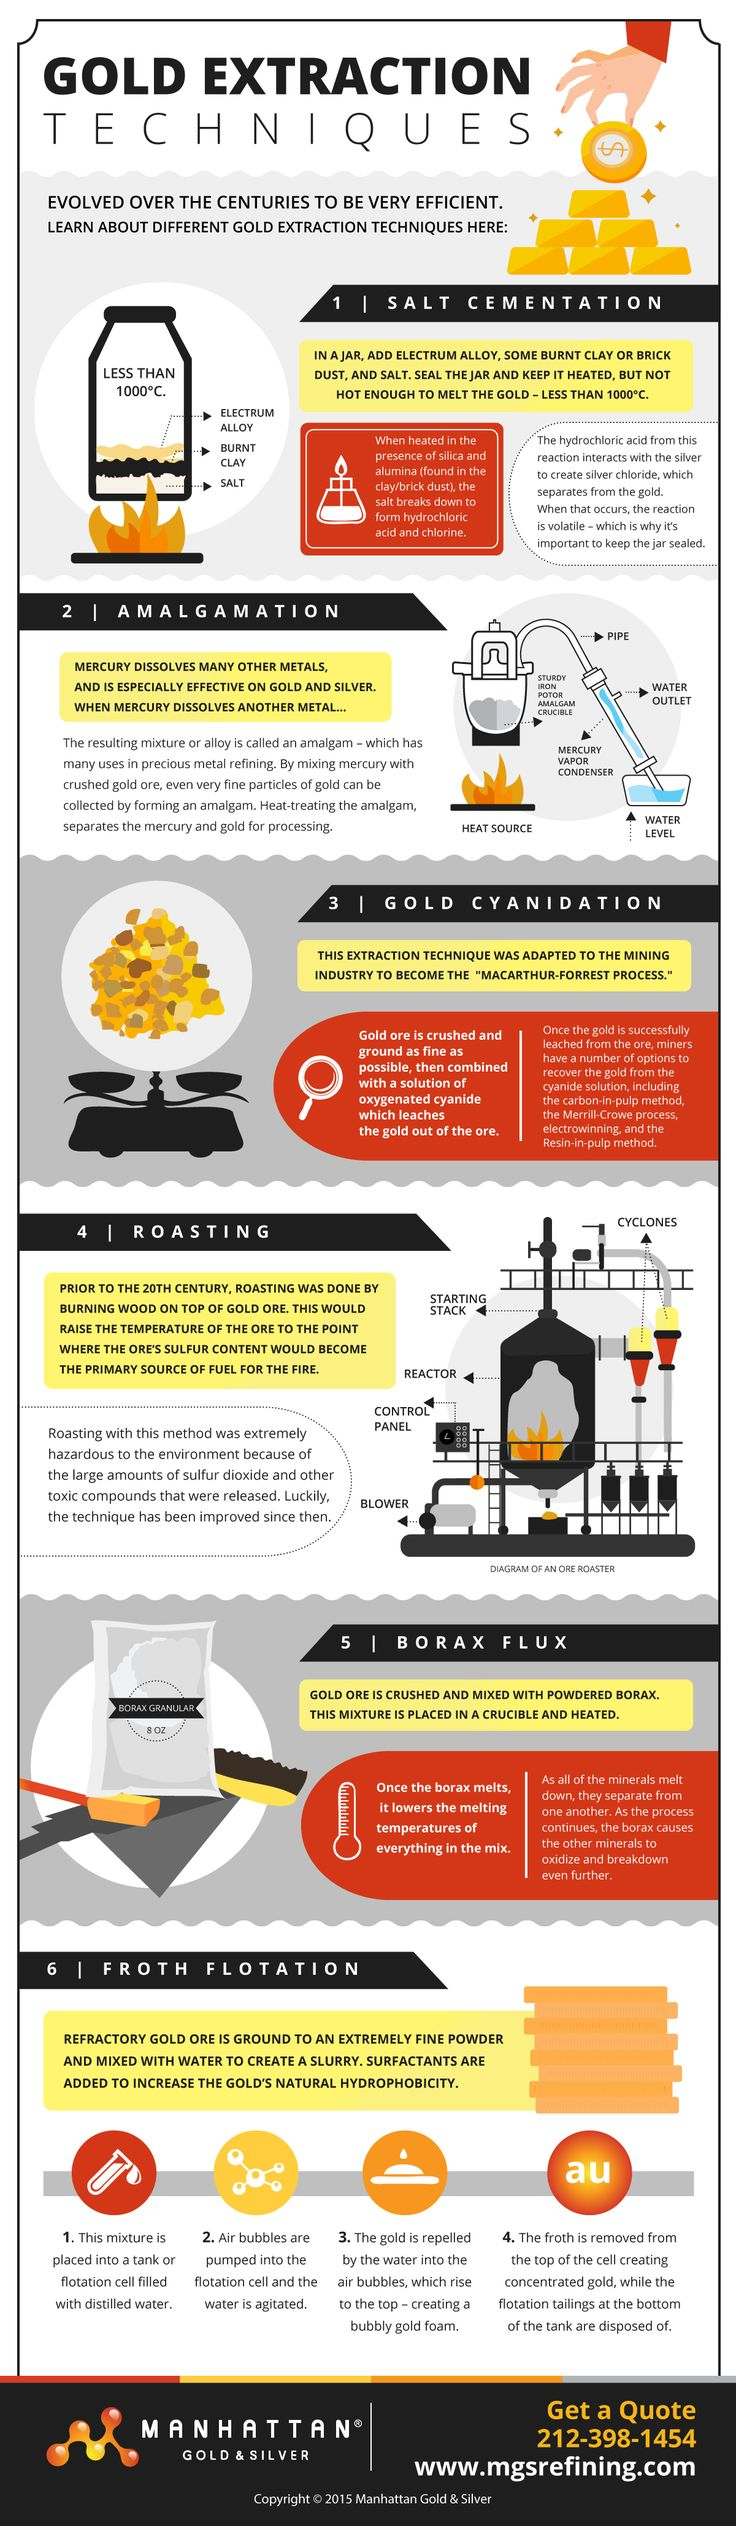 Infographic: Gold extraction techniques